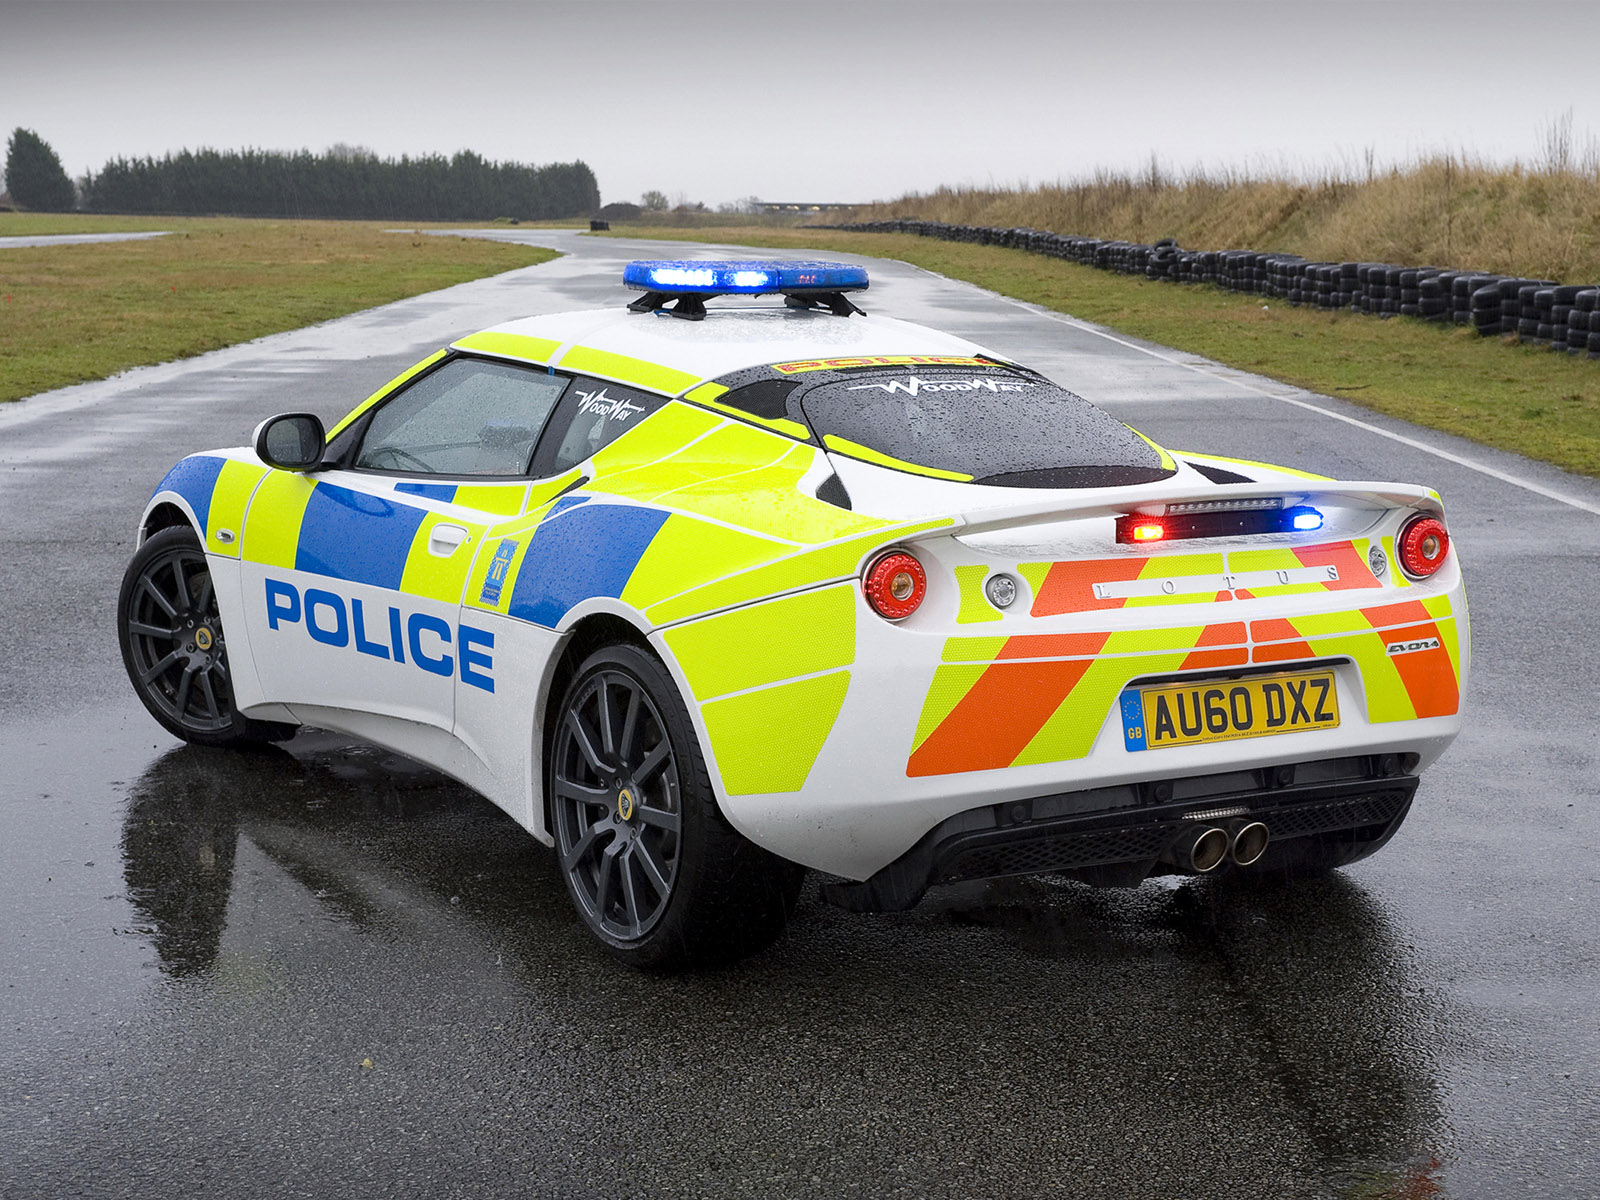 Coolest Car Colors >> 2010 Lotus Evora Police supercar supercars f wallpaper | 1600x1200 | 109674 | WallpaperUP